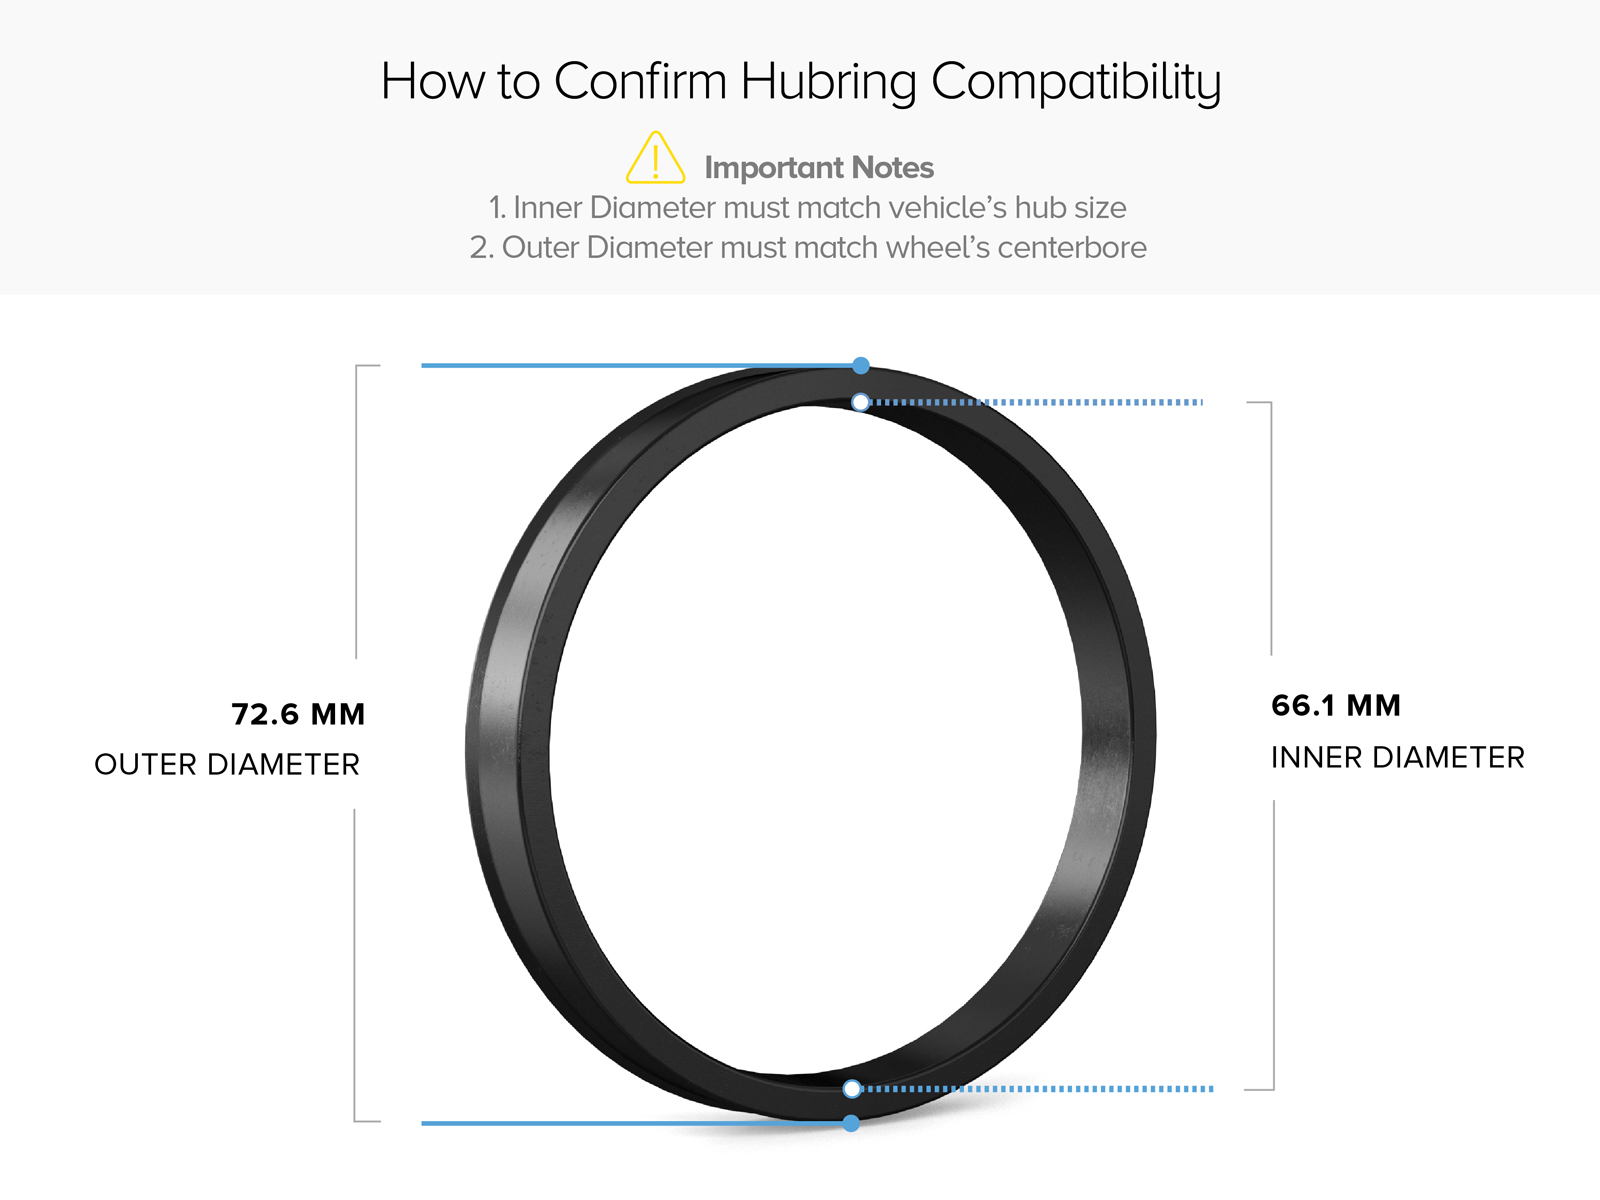 4 pieces Hubcentric Rings Aluminum Hubrings by Precision European Motorwerks 72.6mm OD to 66.1mm ID